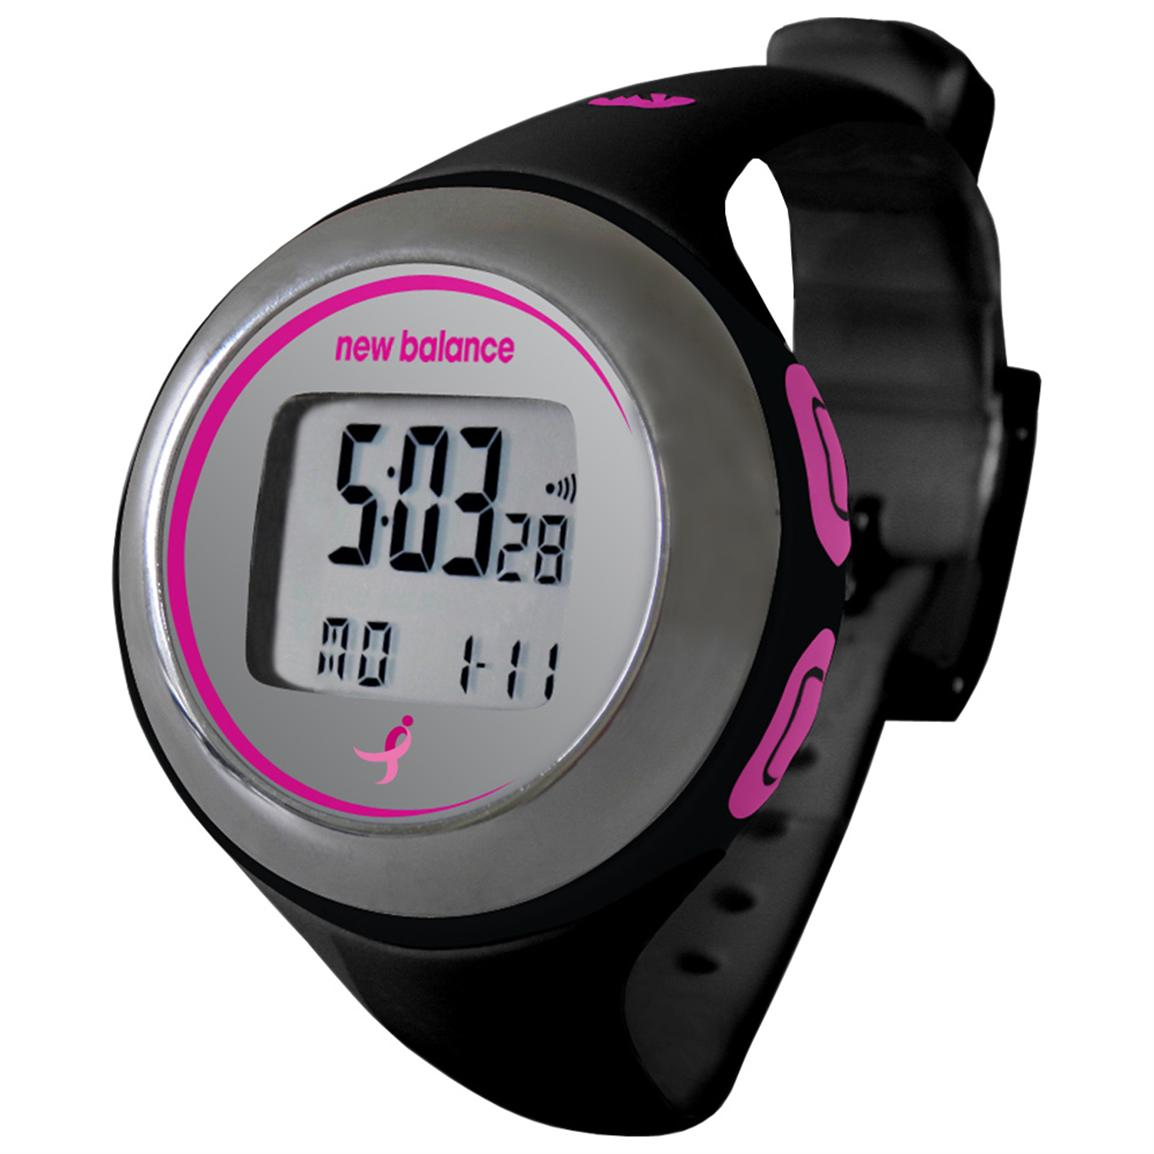 New Balance® HRT Komen Fitness Watch with Heart Rate Monitor